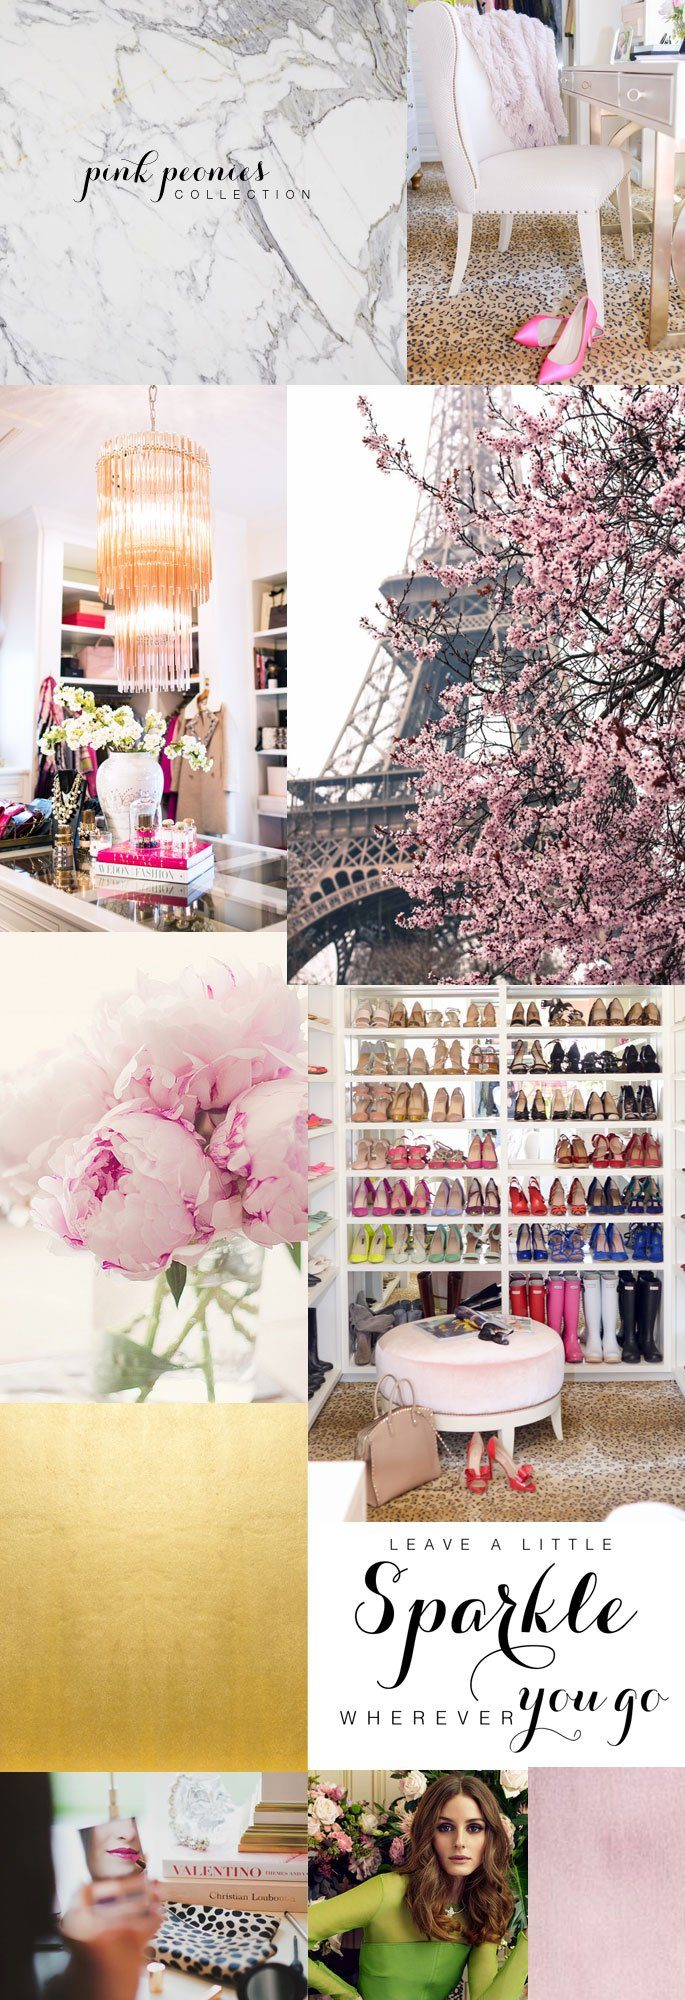 Pink Peonies Collection: Inspiration…